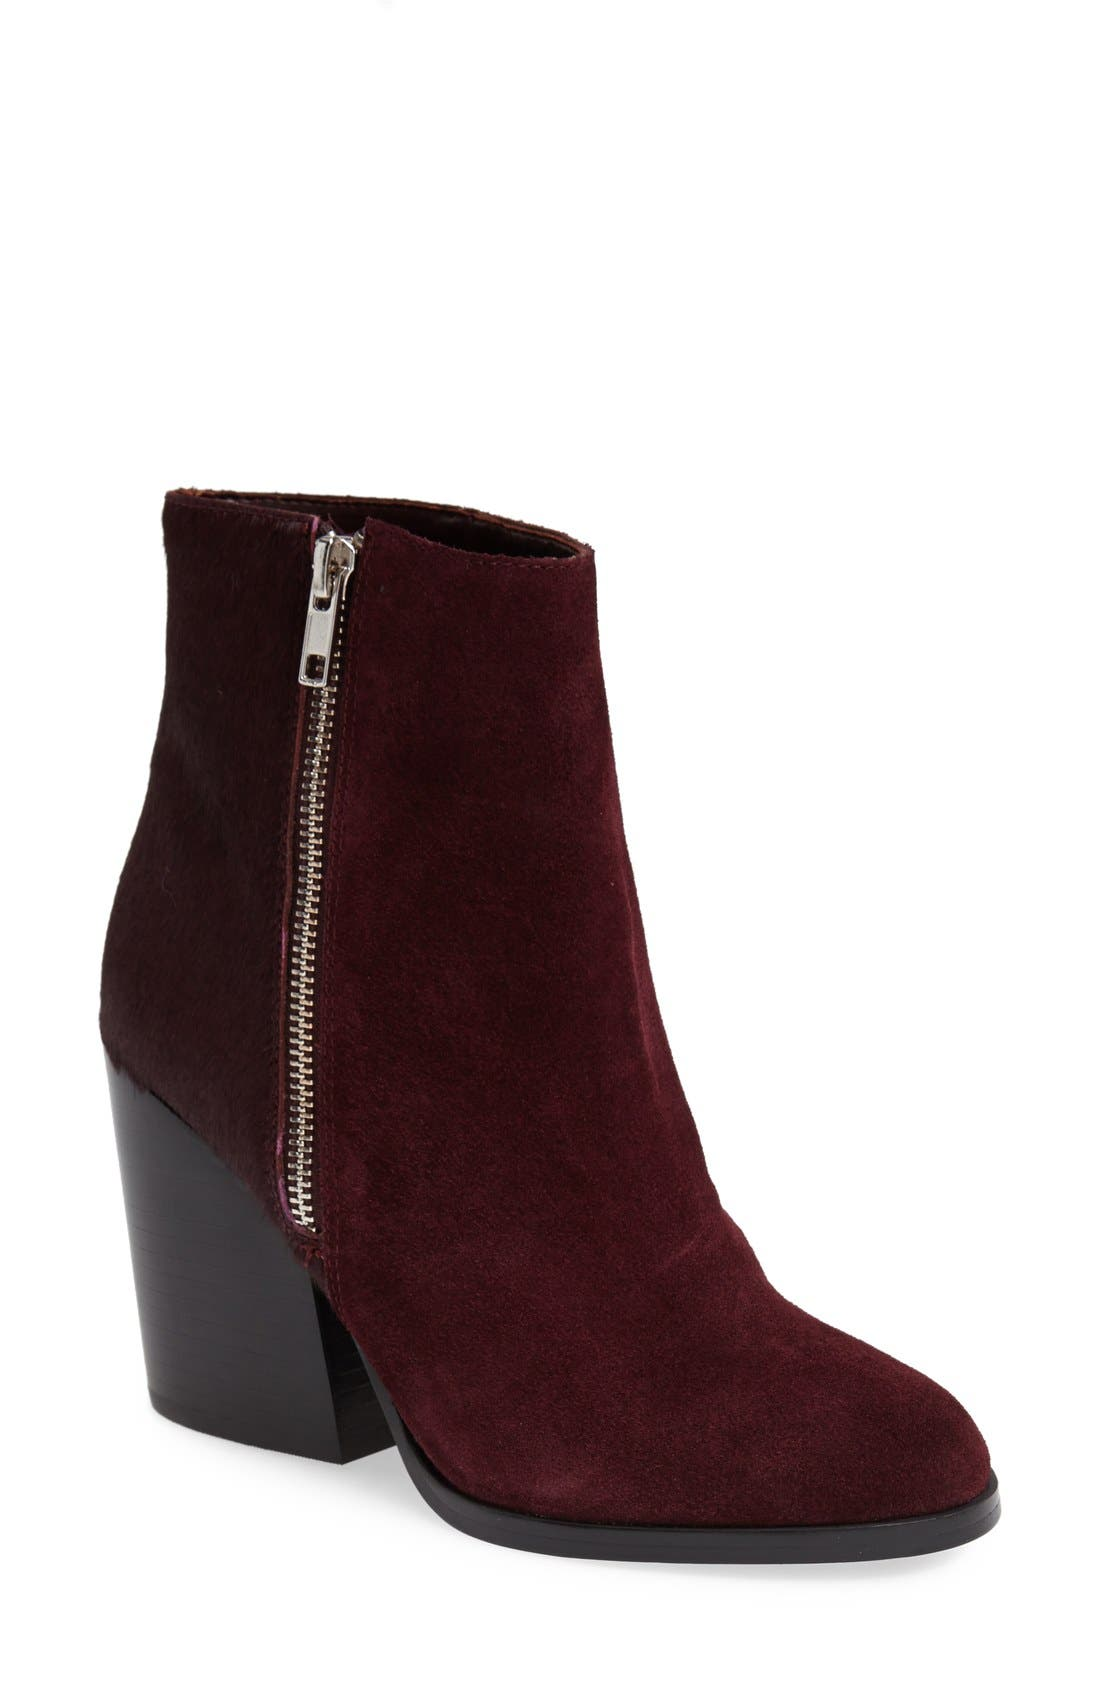 Main Image - Peace Love Shea Steve Madden 'Tstudio' Leather & Calf Hair Bootie (Women)